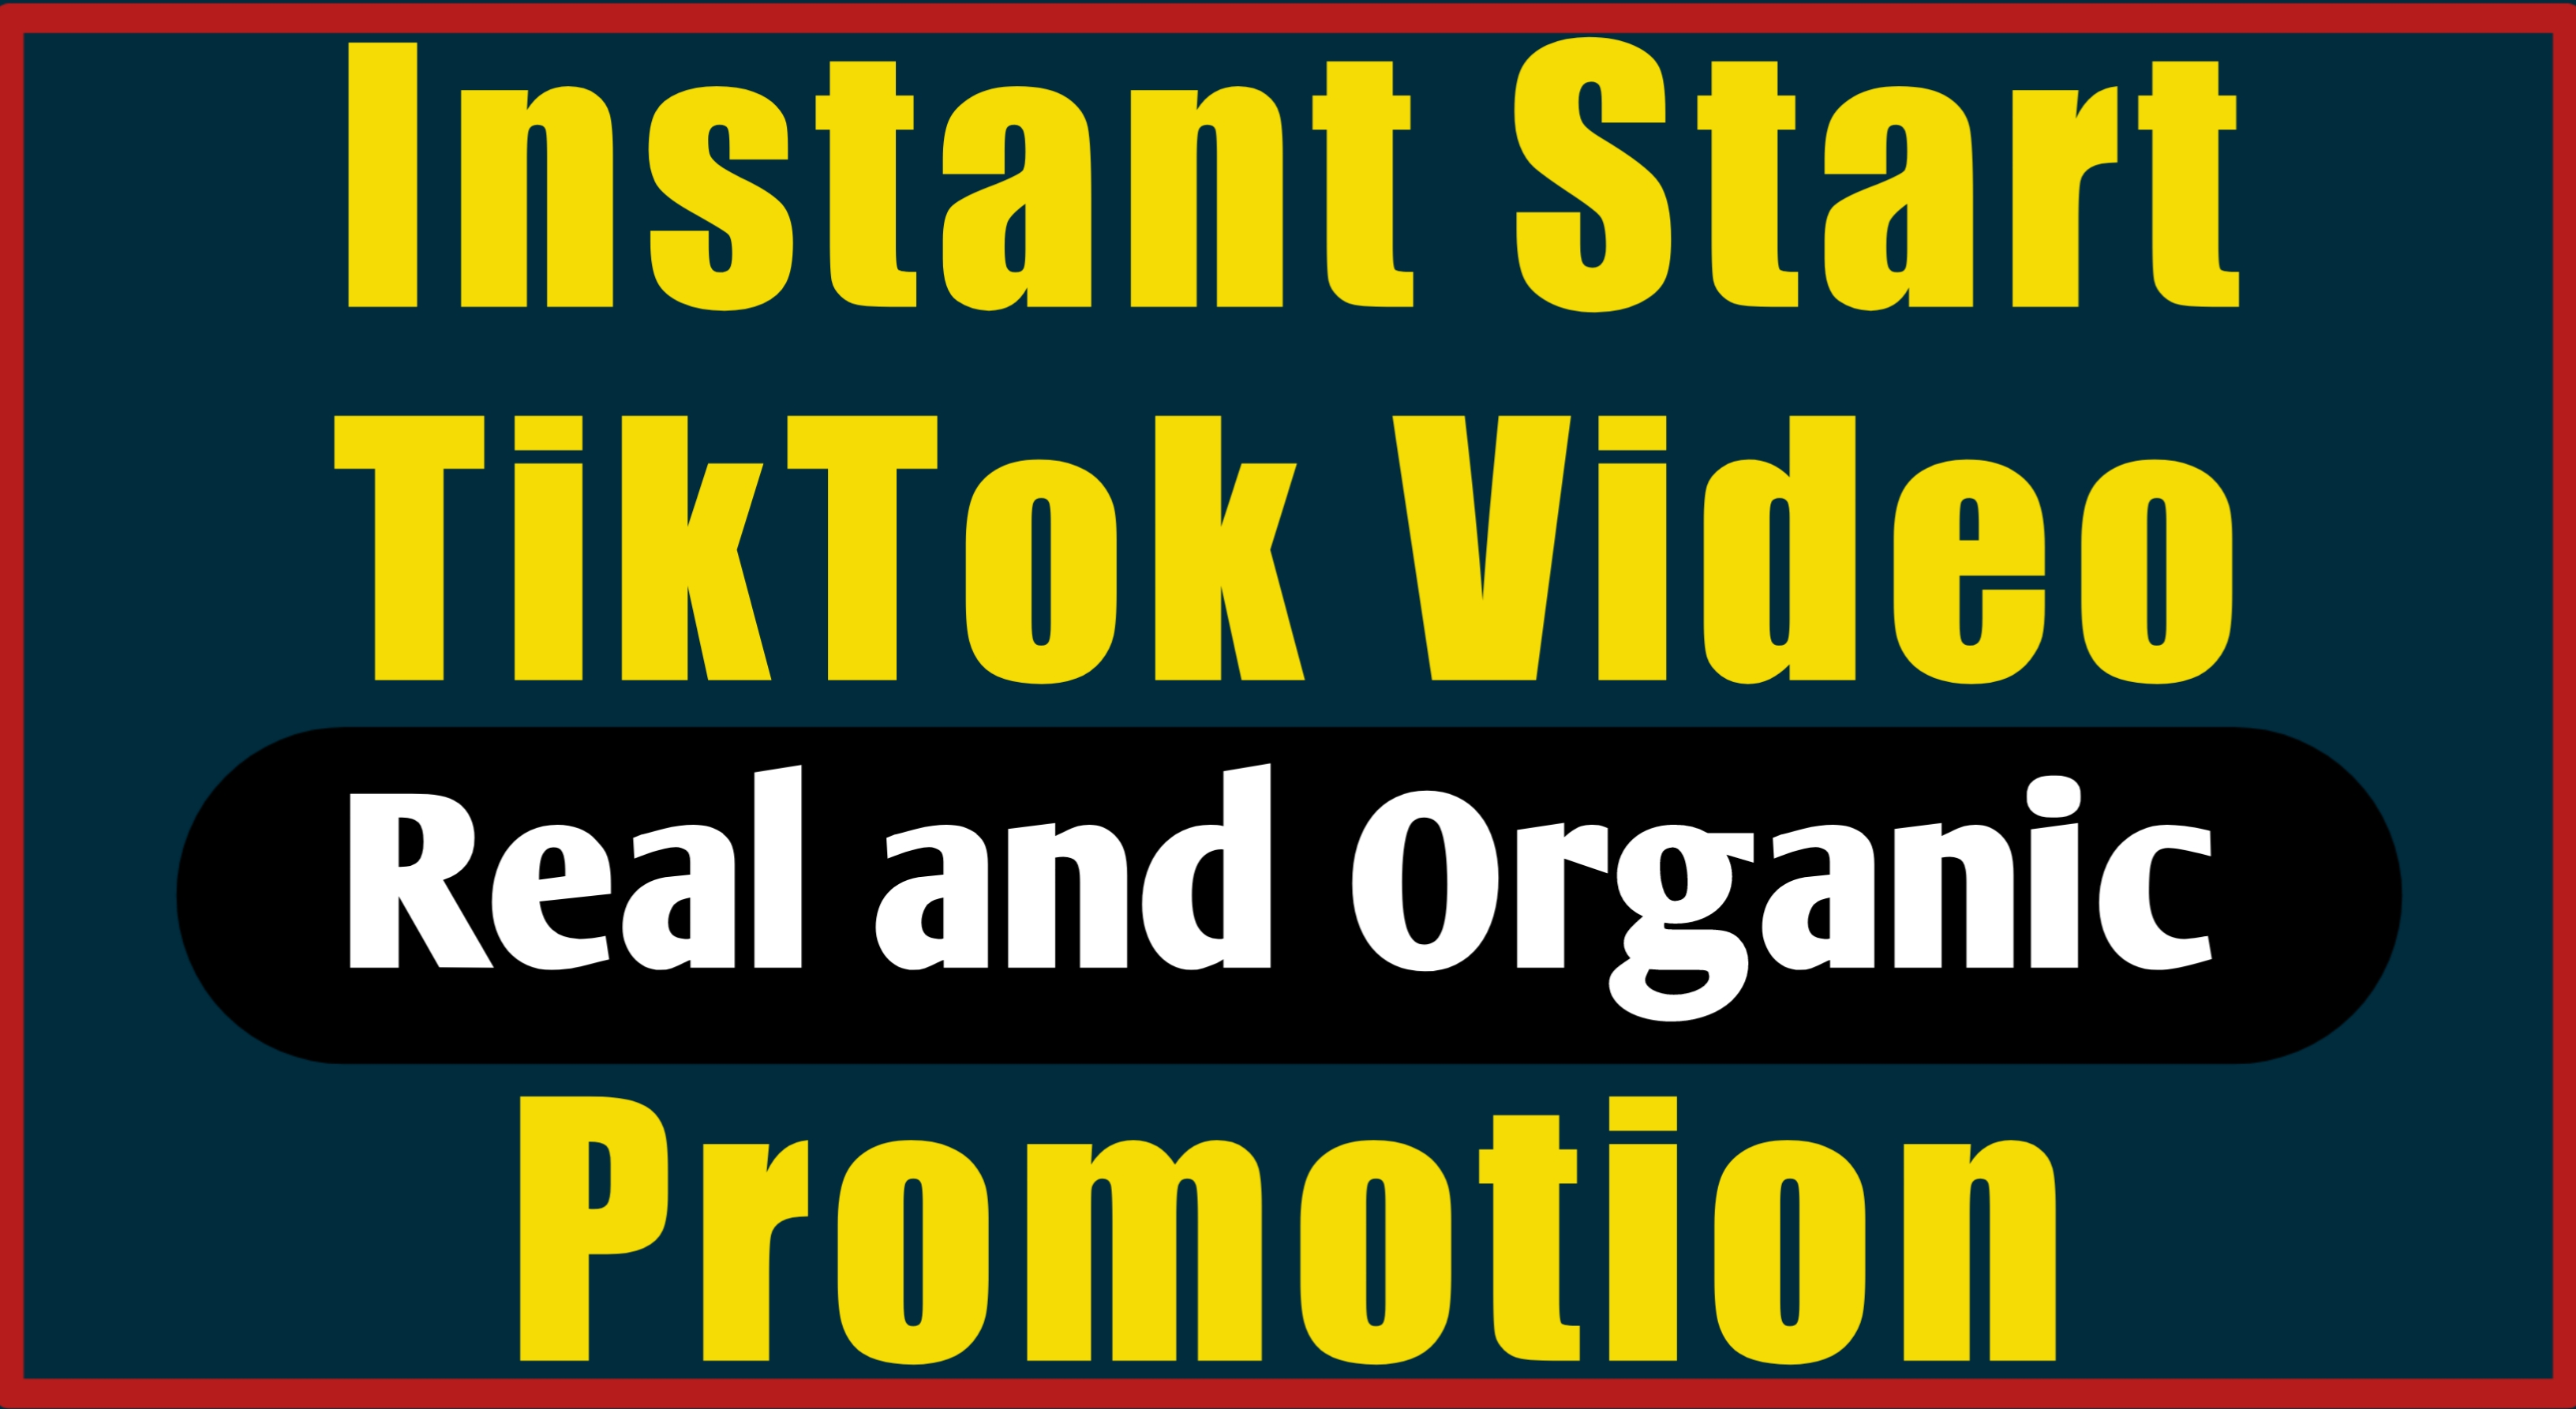 Real and Organic TikTok Video Promotion With Fast Speed